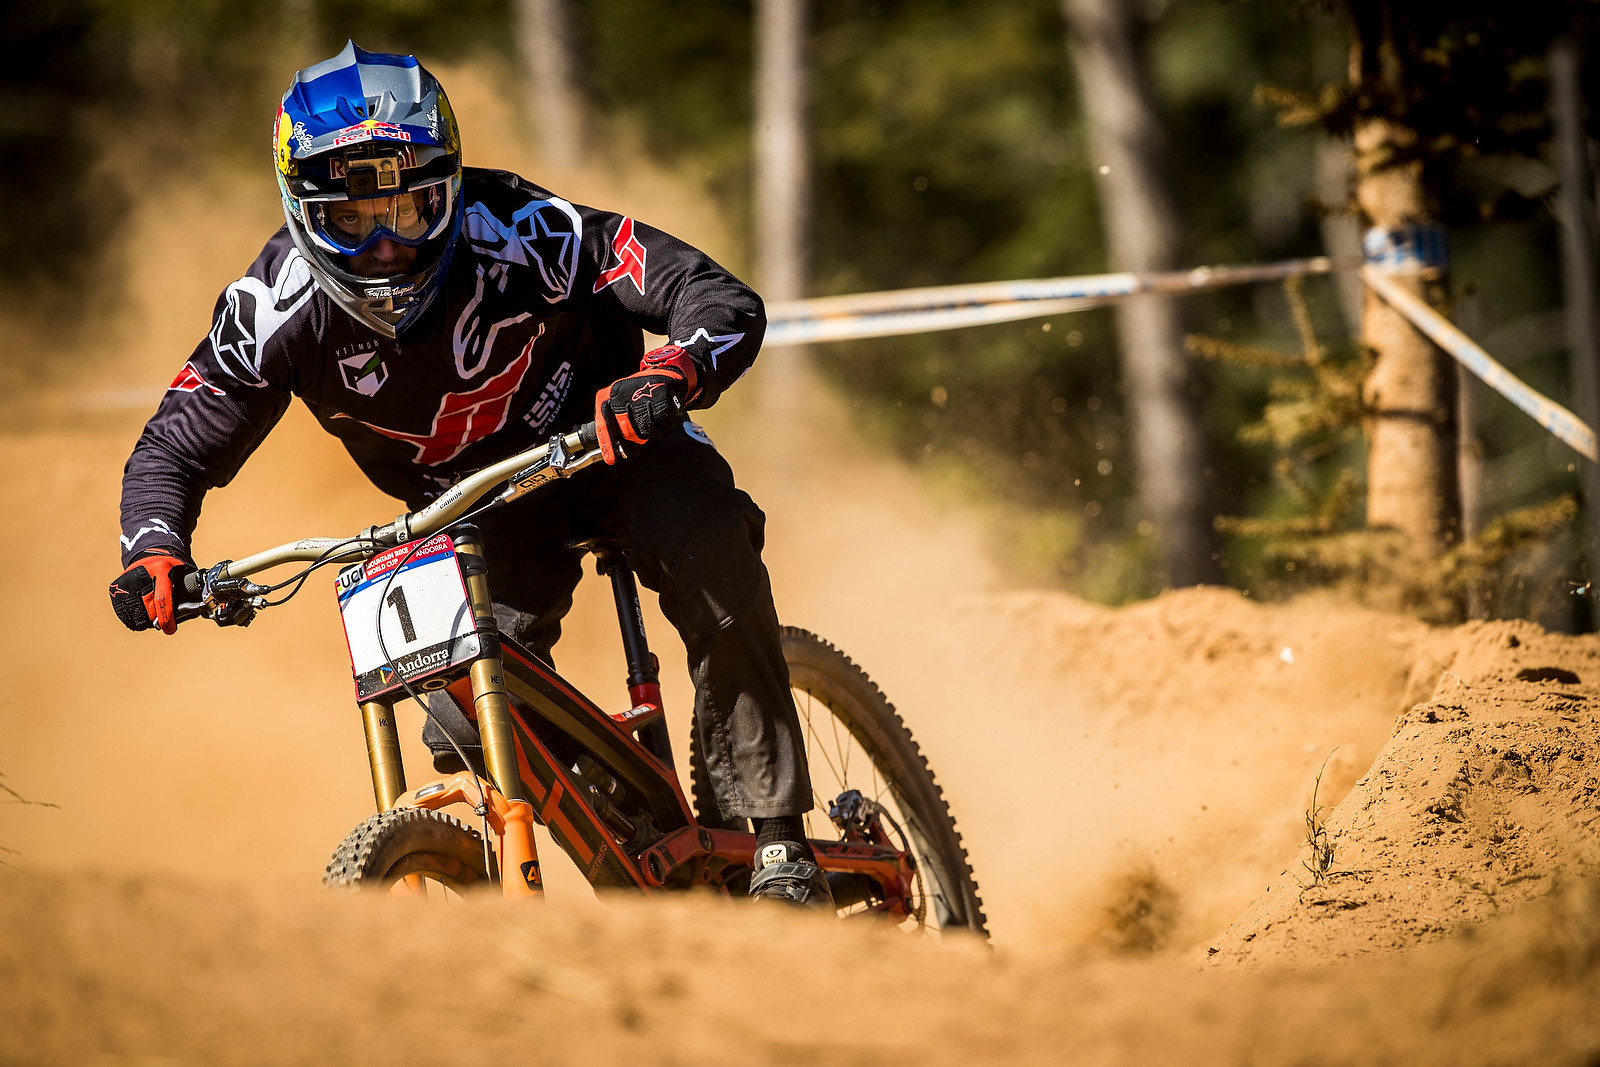 30b05834417 2016 UCI World Cup DH Overall Results - Mountain Bikes News Stories ...